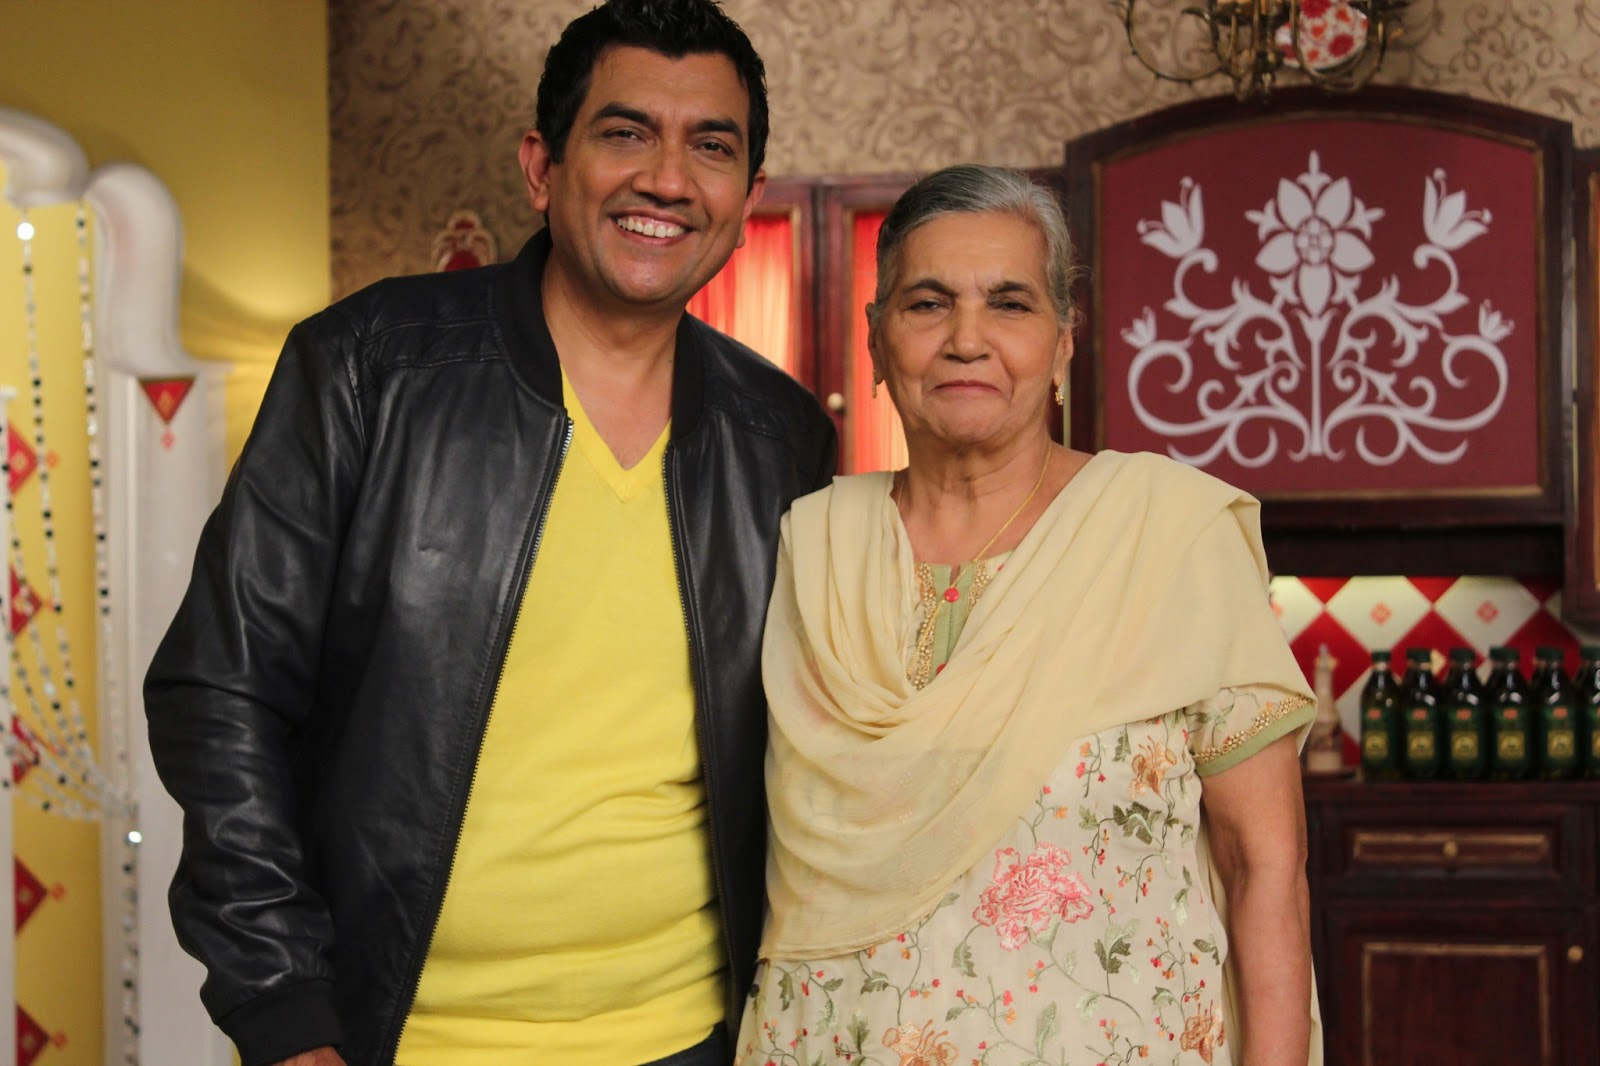 Mothers Day is every day! | From My Kitchen - Sanjeev Kapoor